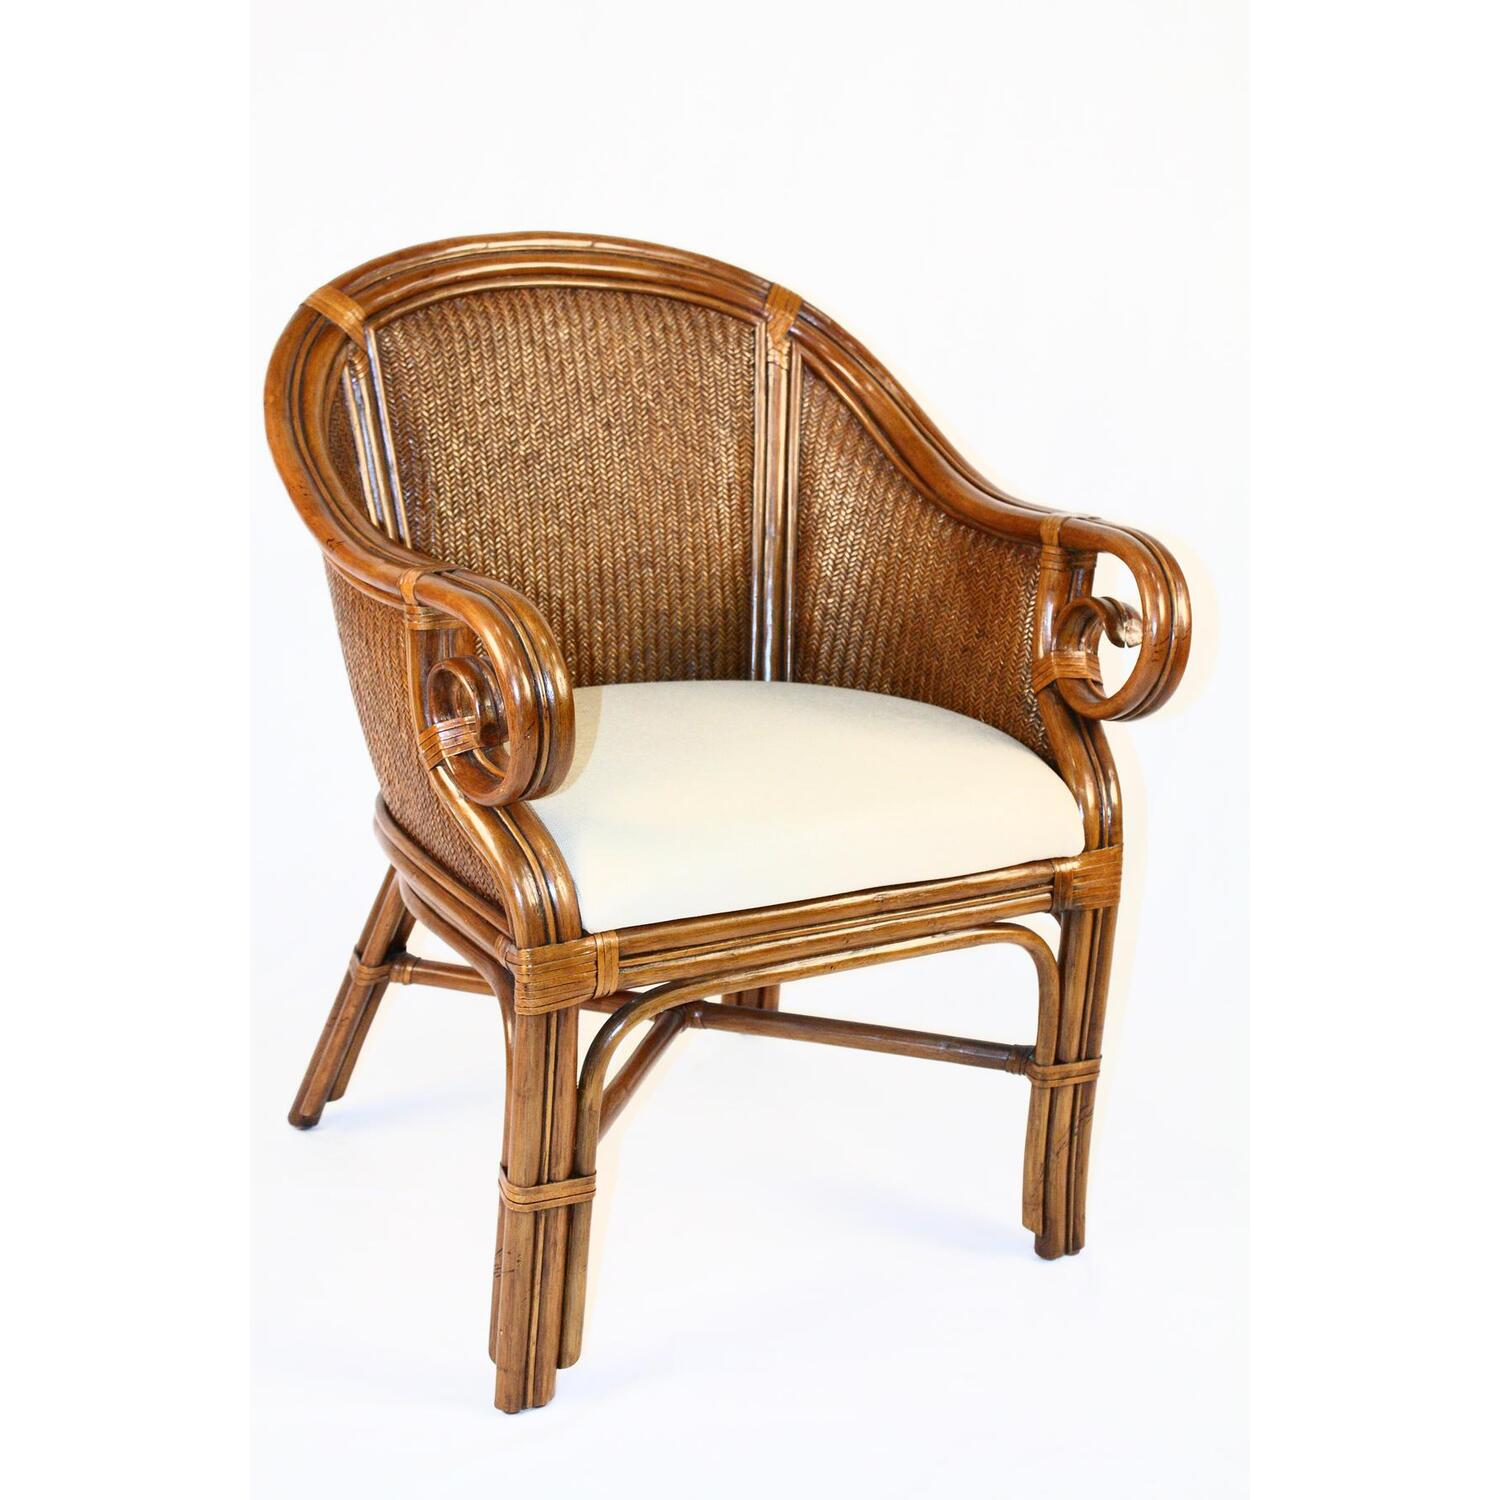 Hospitality Rattan Indoor Rattan Wicker Club Chair By Oj Commerce 307 3364 Tca